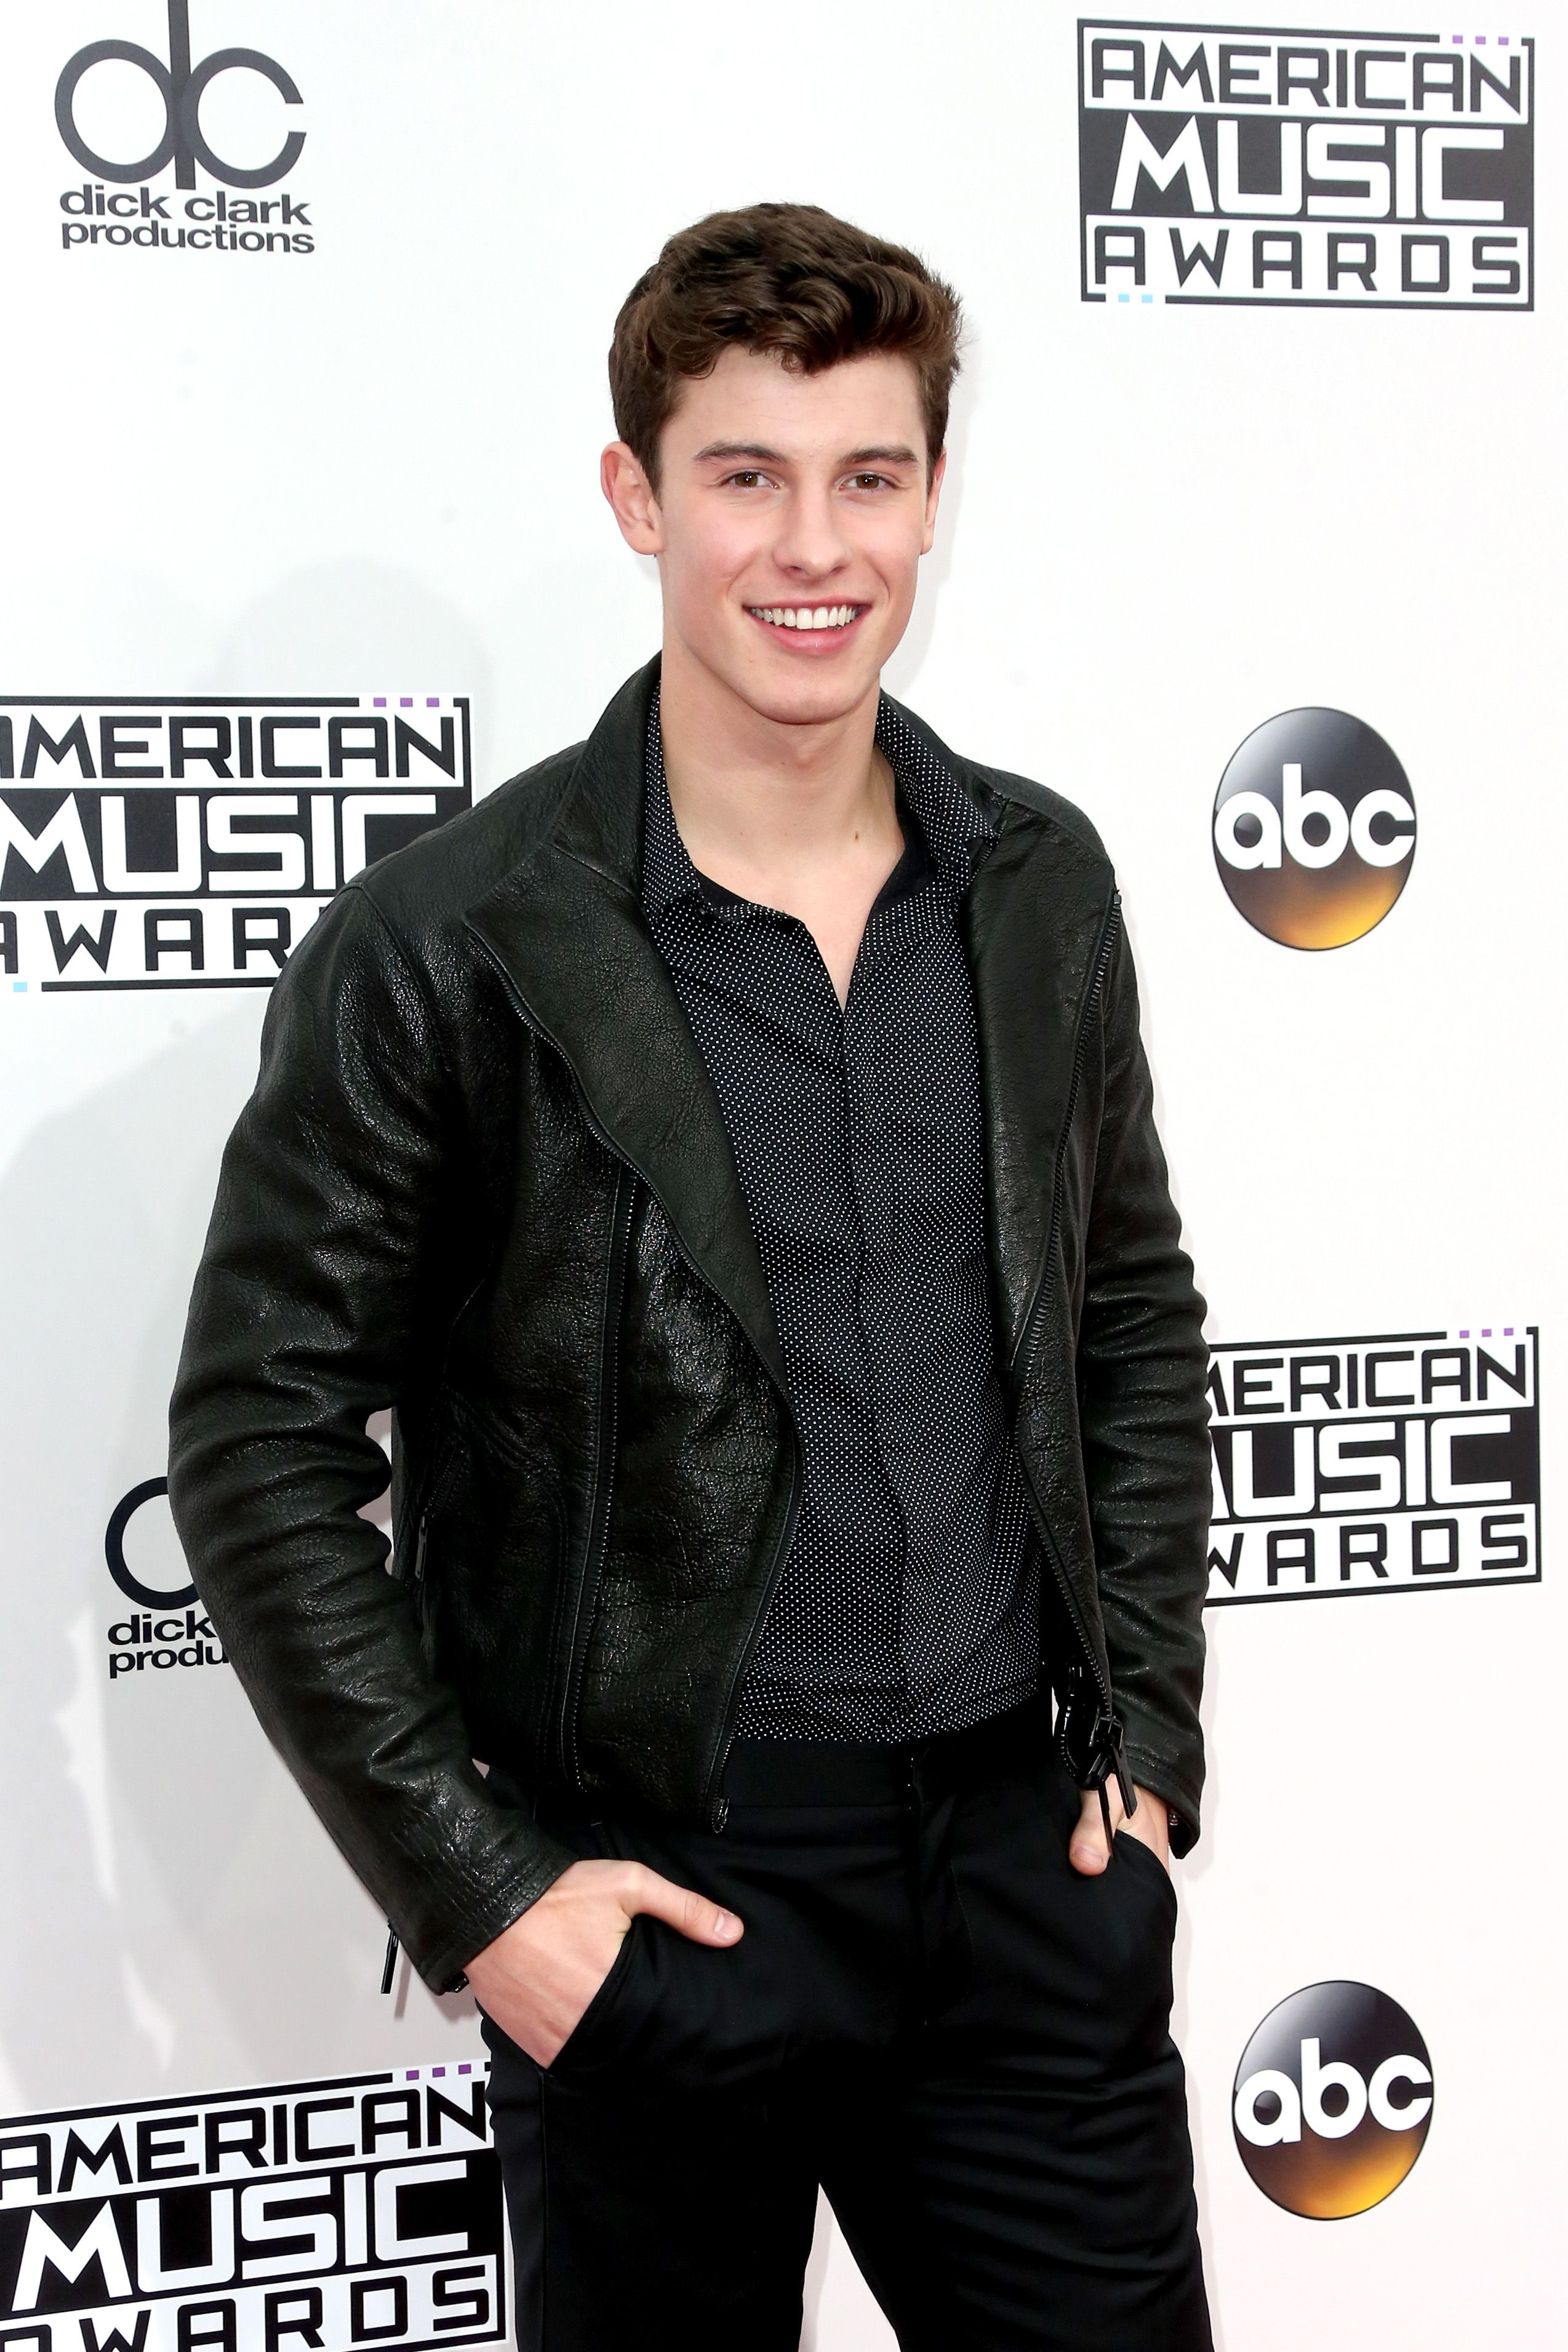 In Los Angeles last night, Shawn Mendes attended the 2016 American Music Awards wearing Emporio Armani. #ArmaniStars